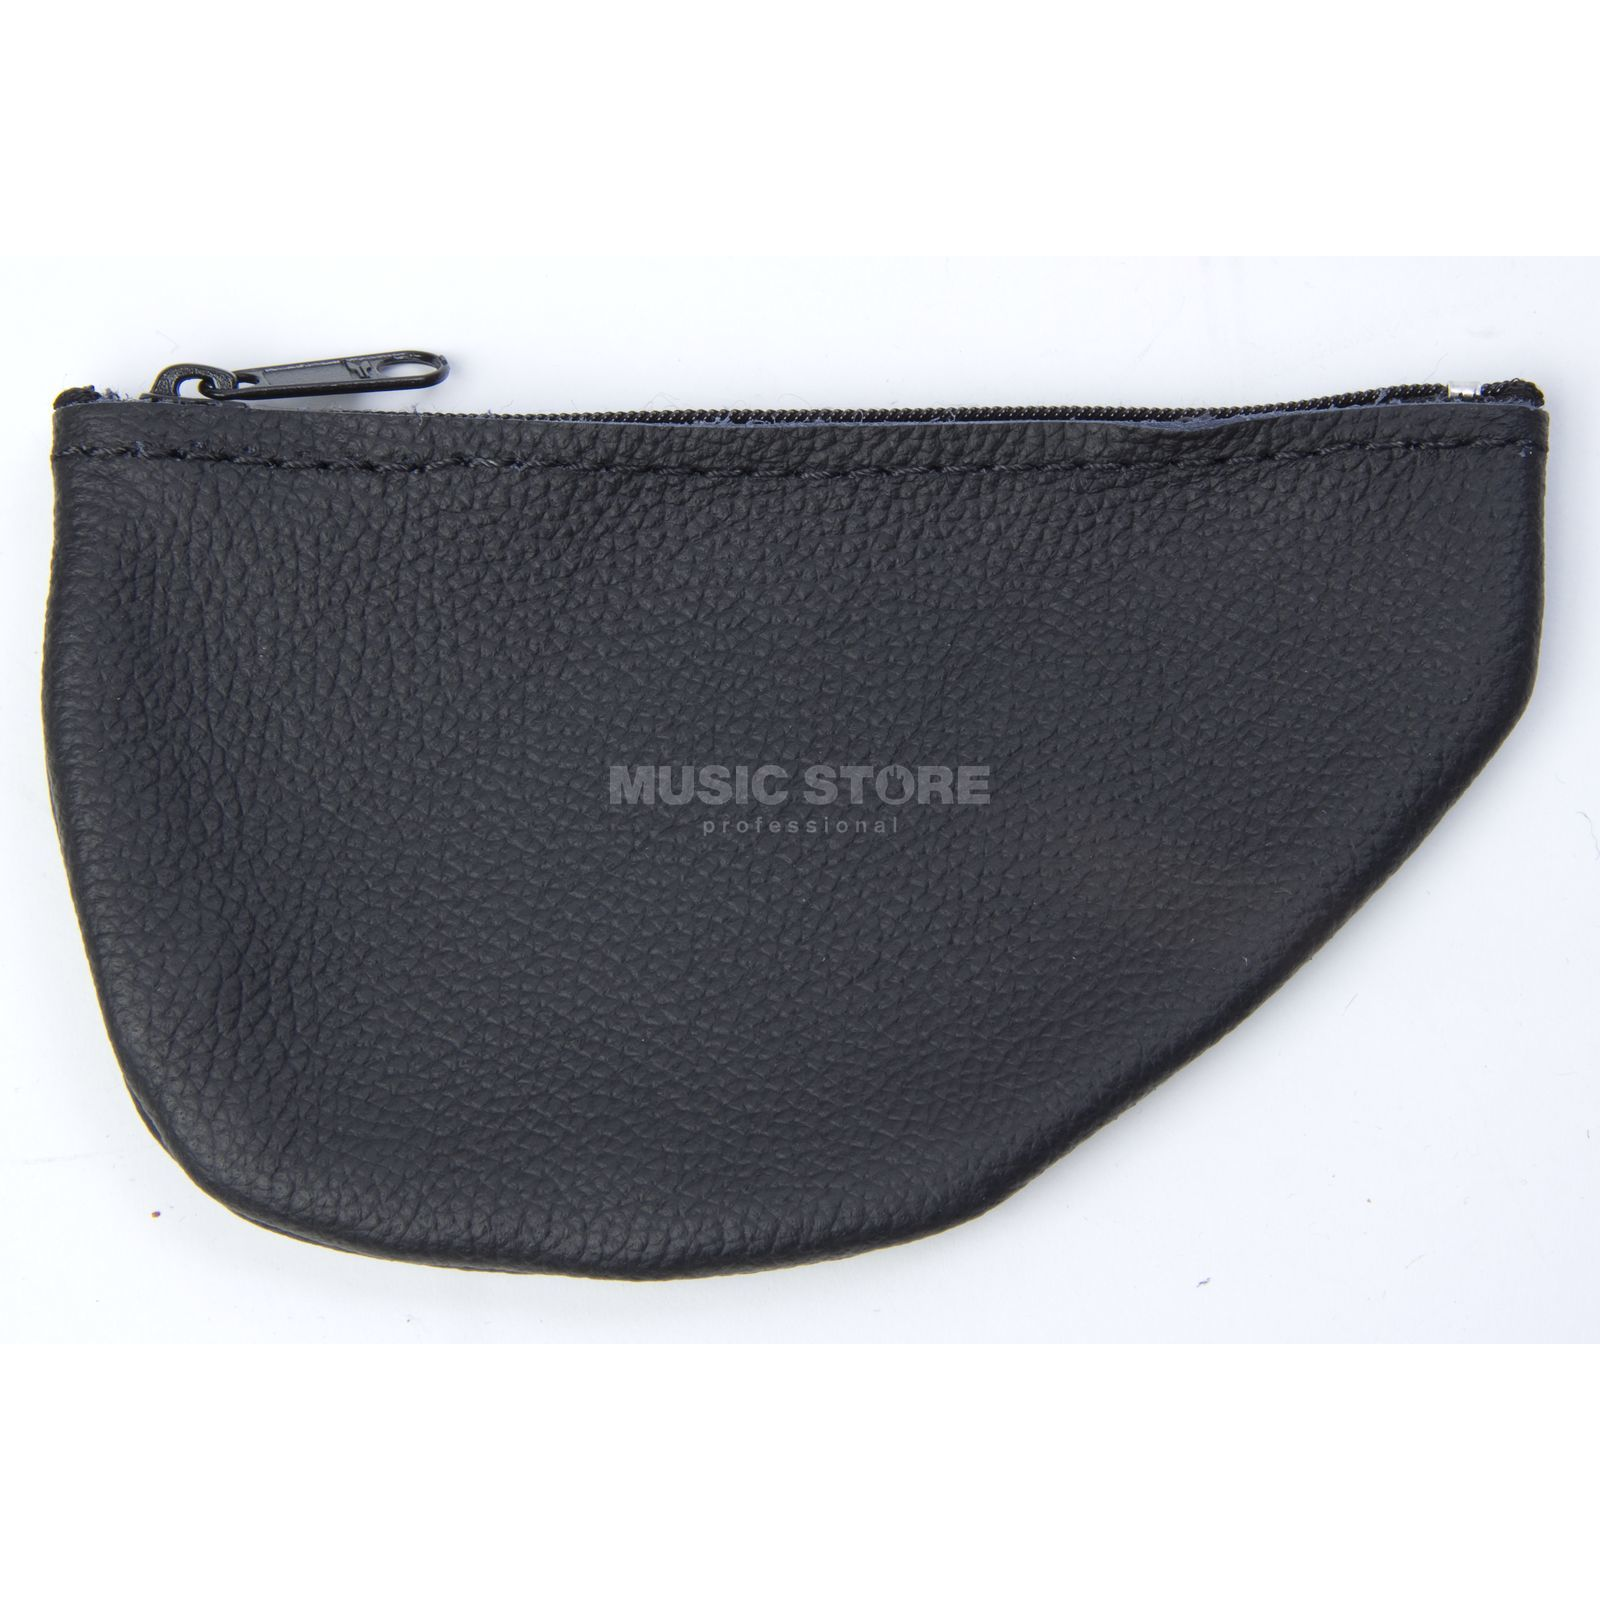 Stölzel Mouth Piece Bag - Tuba Product Image